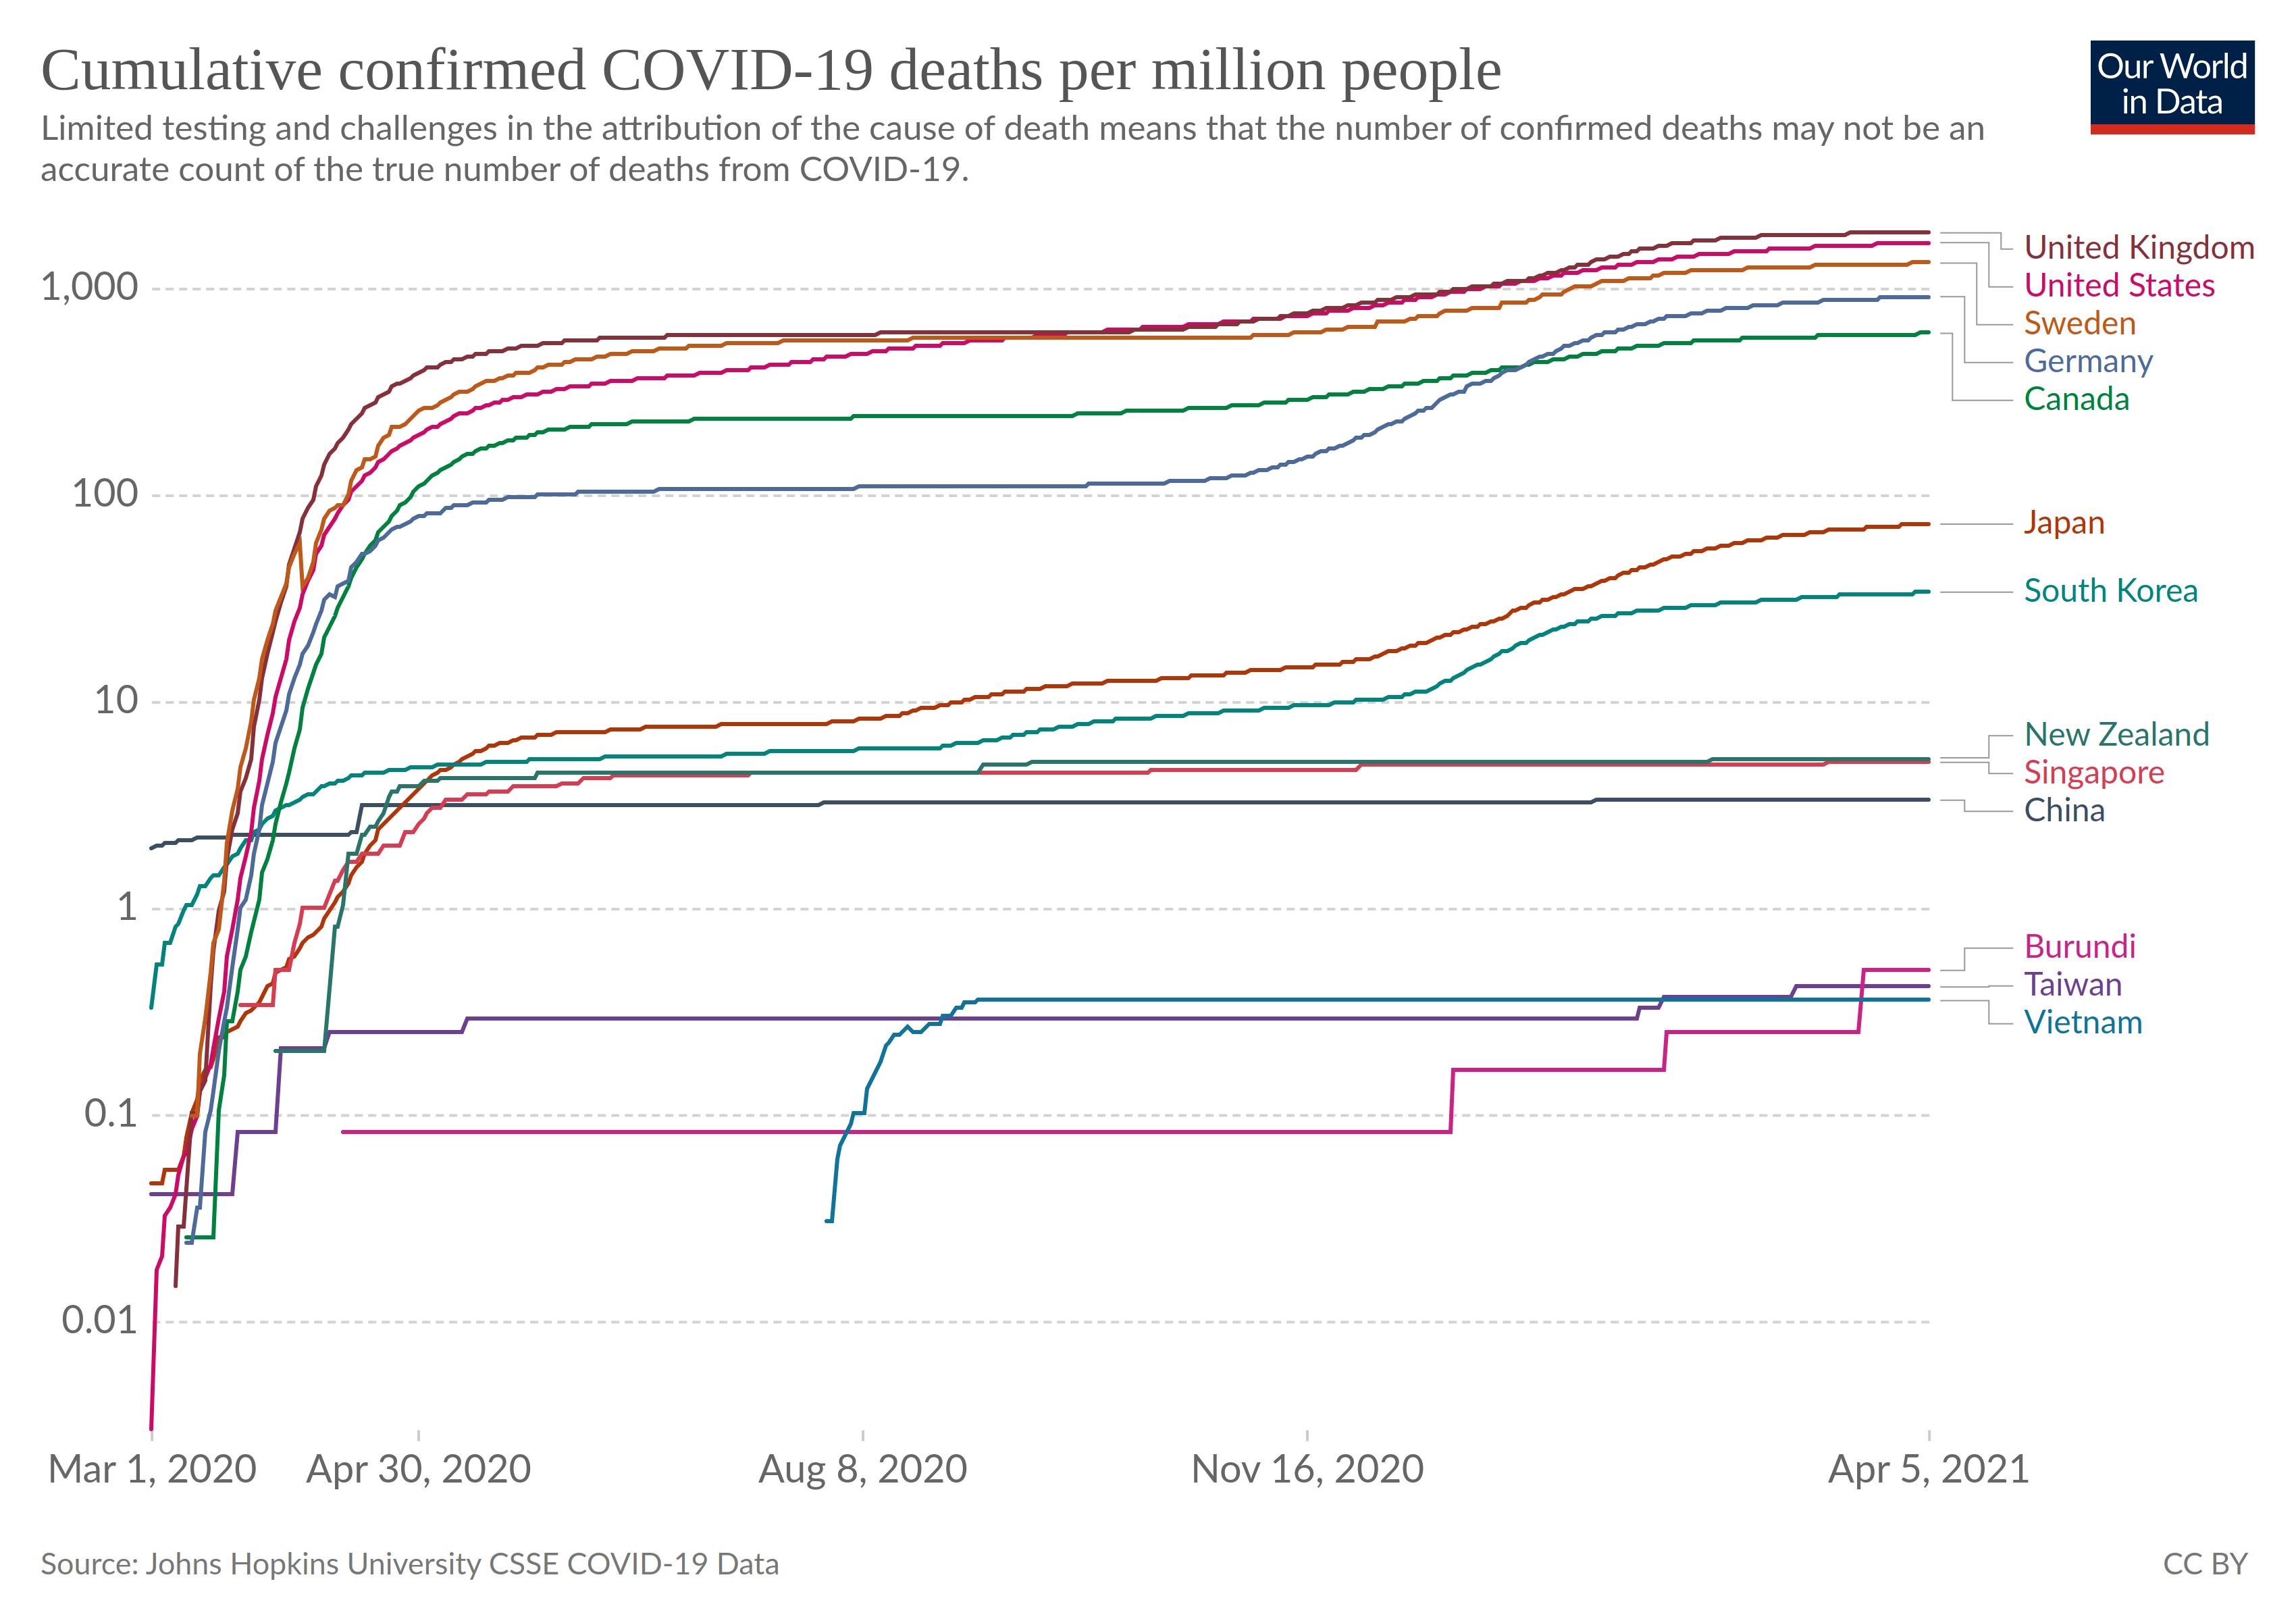 a log chart of deaths from covid-19 over time by thirteen countries in the North Atlantic and West Pacific regions